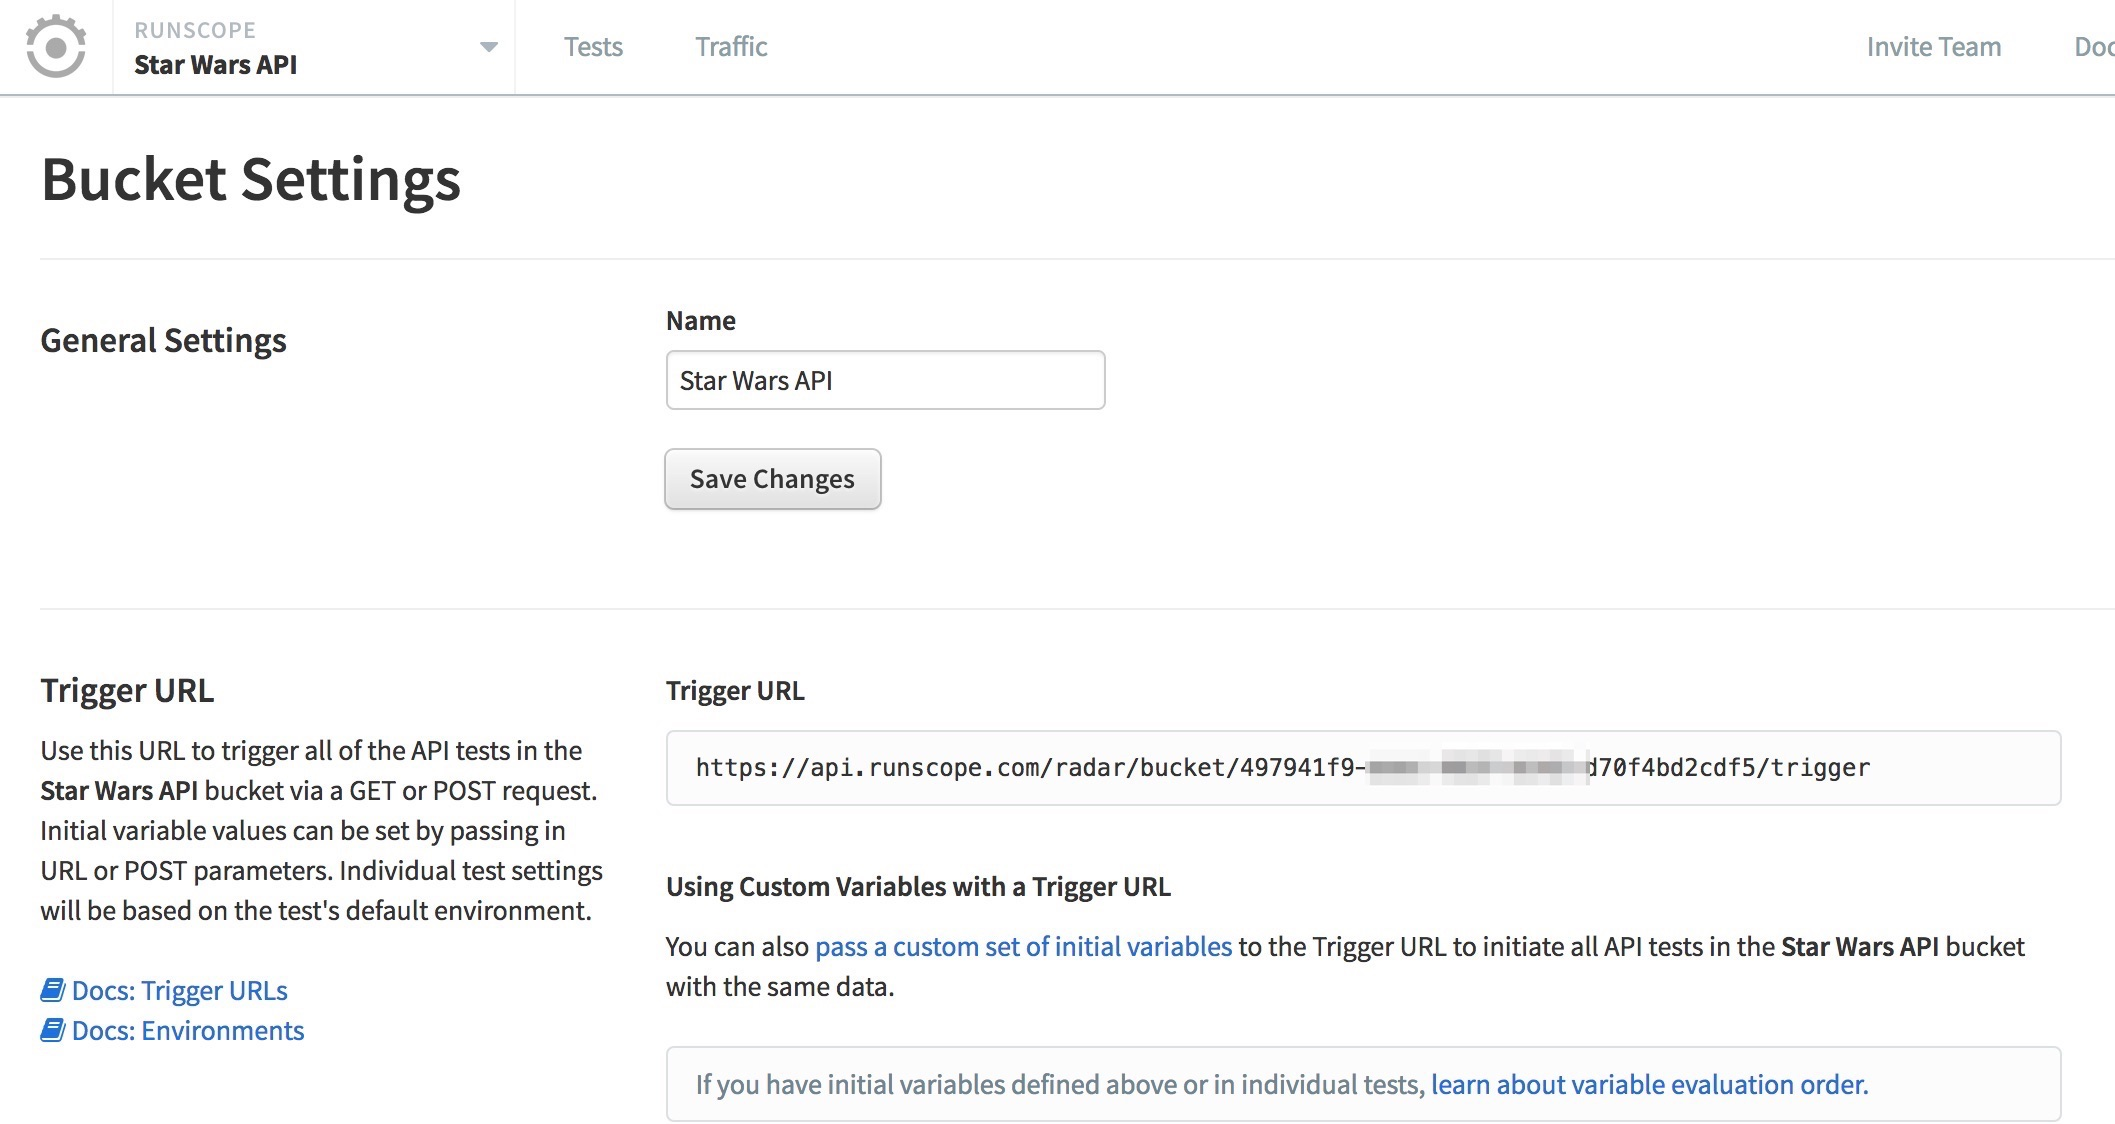 Runscope bucket settings page, highlighting Trigger URL section